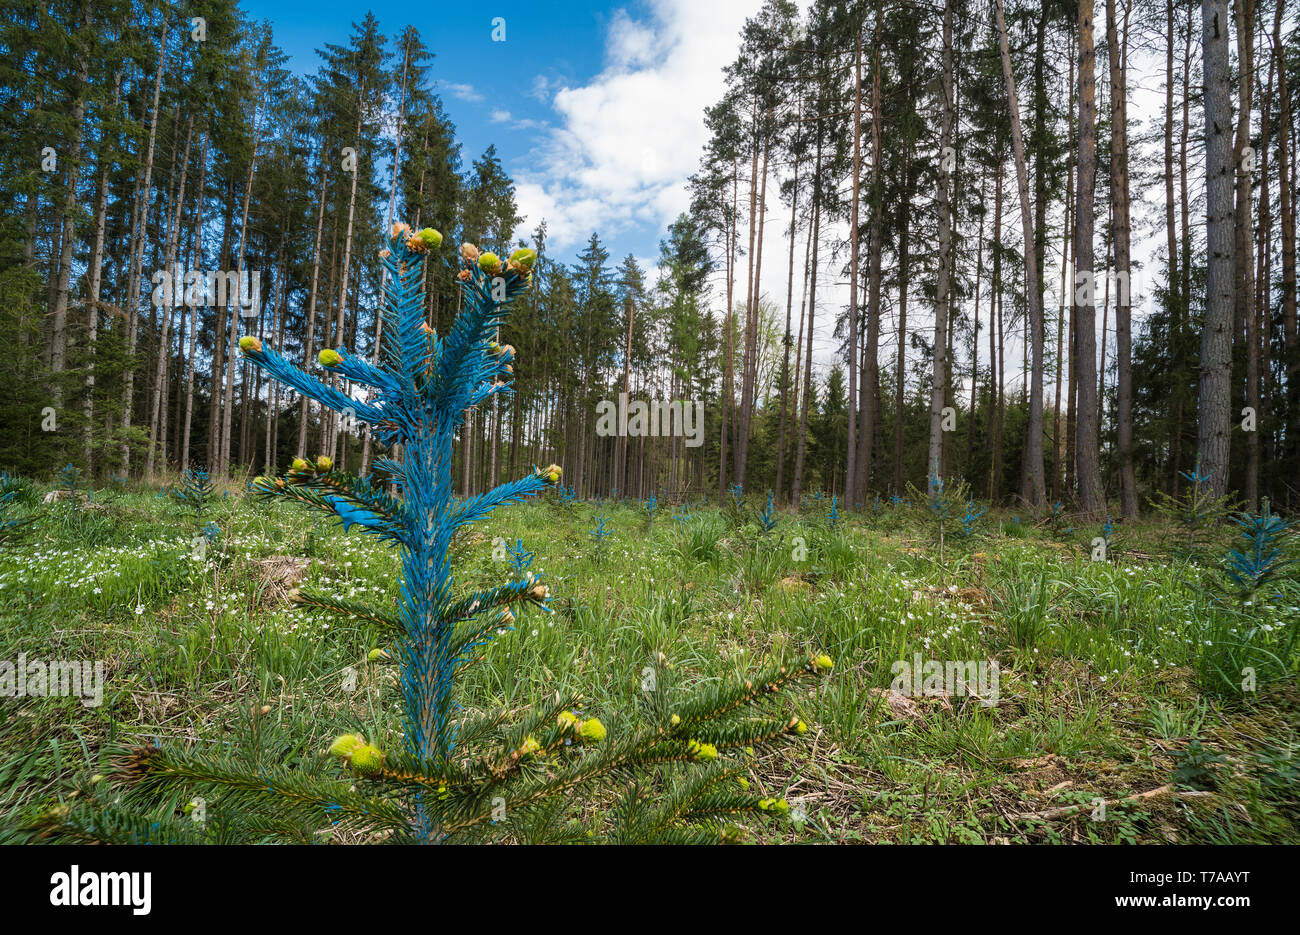 Forest renewal. Young spruce detail. Picea. Blue painted needles. Reforestation. Small coniferous tree. Spring new growth. Green conifers in landscape. - Stock Image